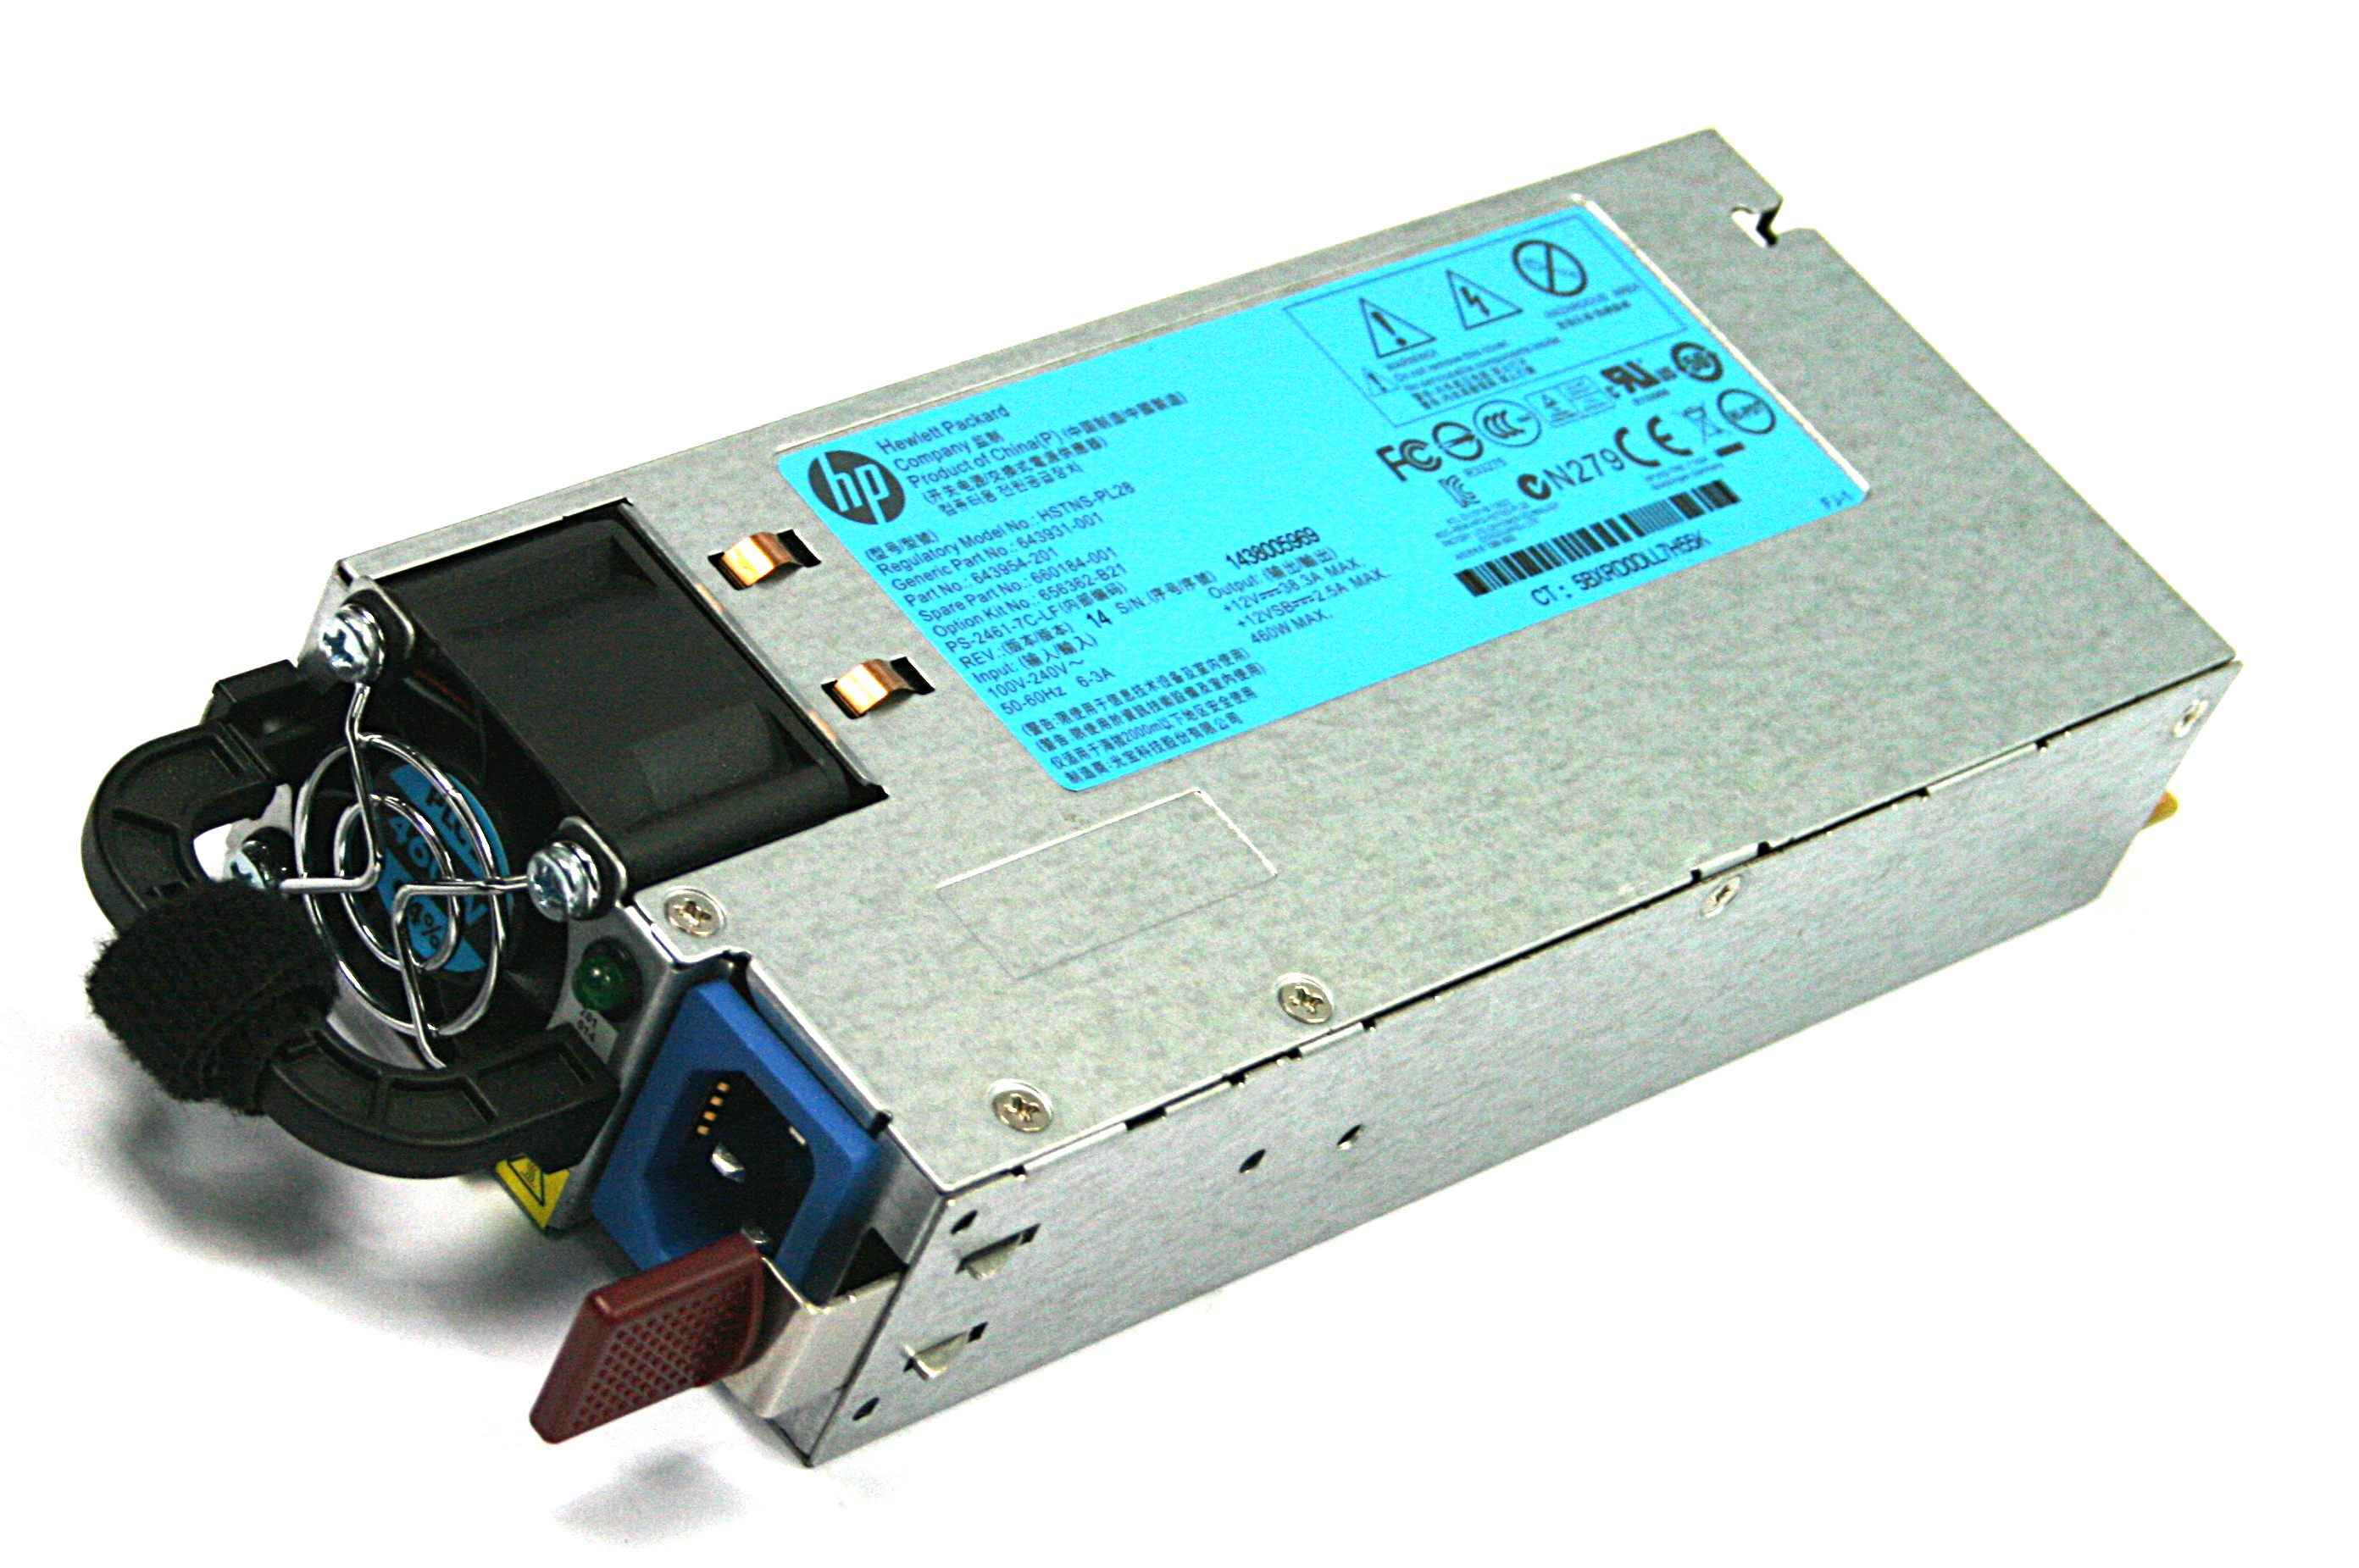 HP 660184-001 460W Switching Power Supply For Proliant DL380p G8 Server